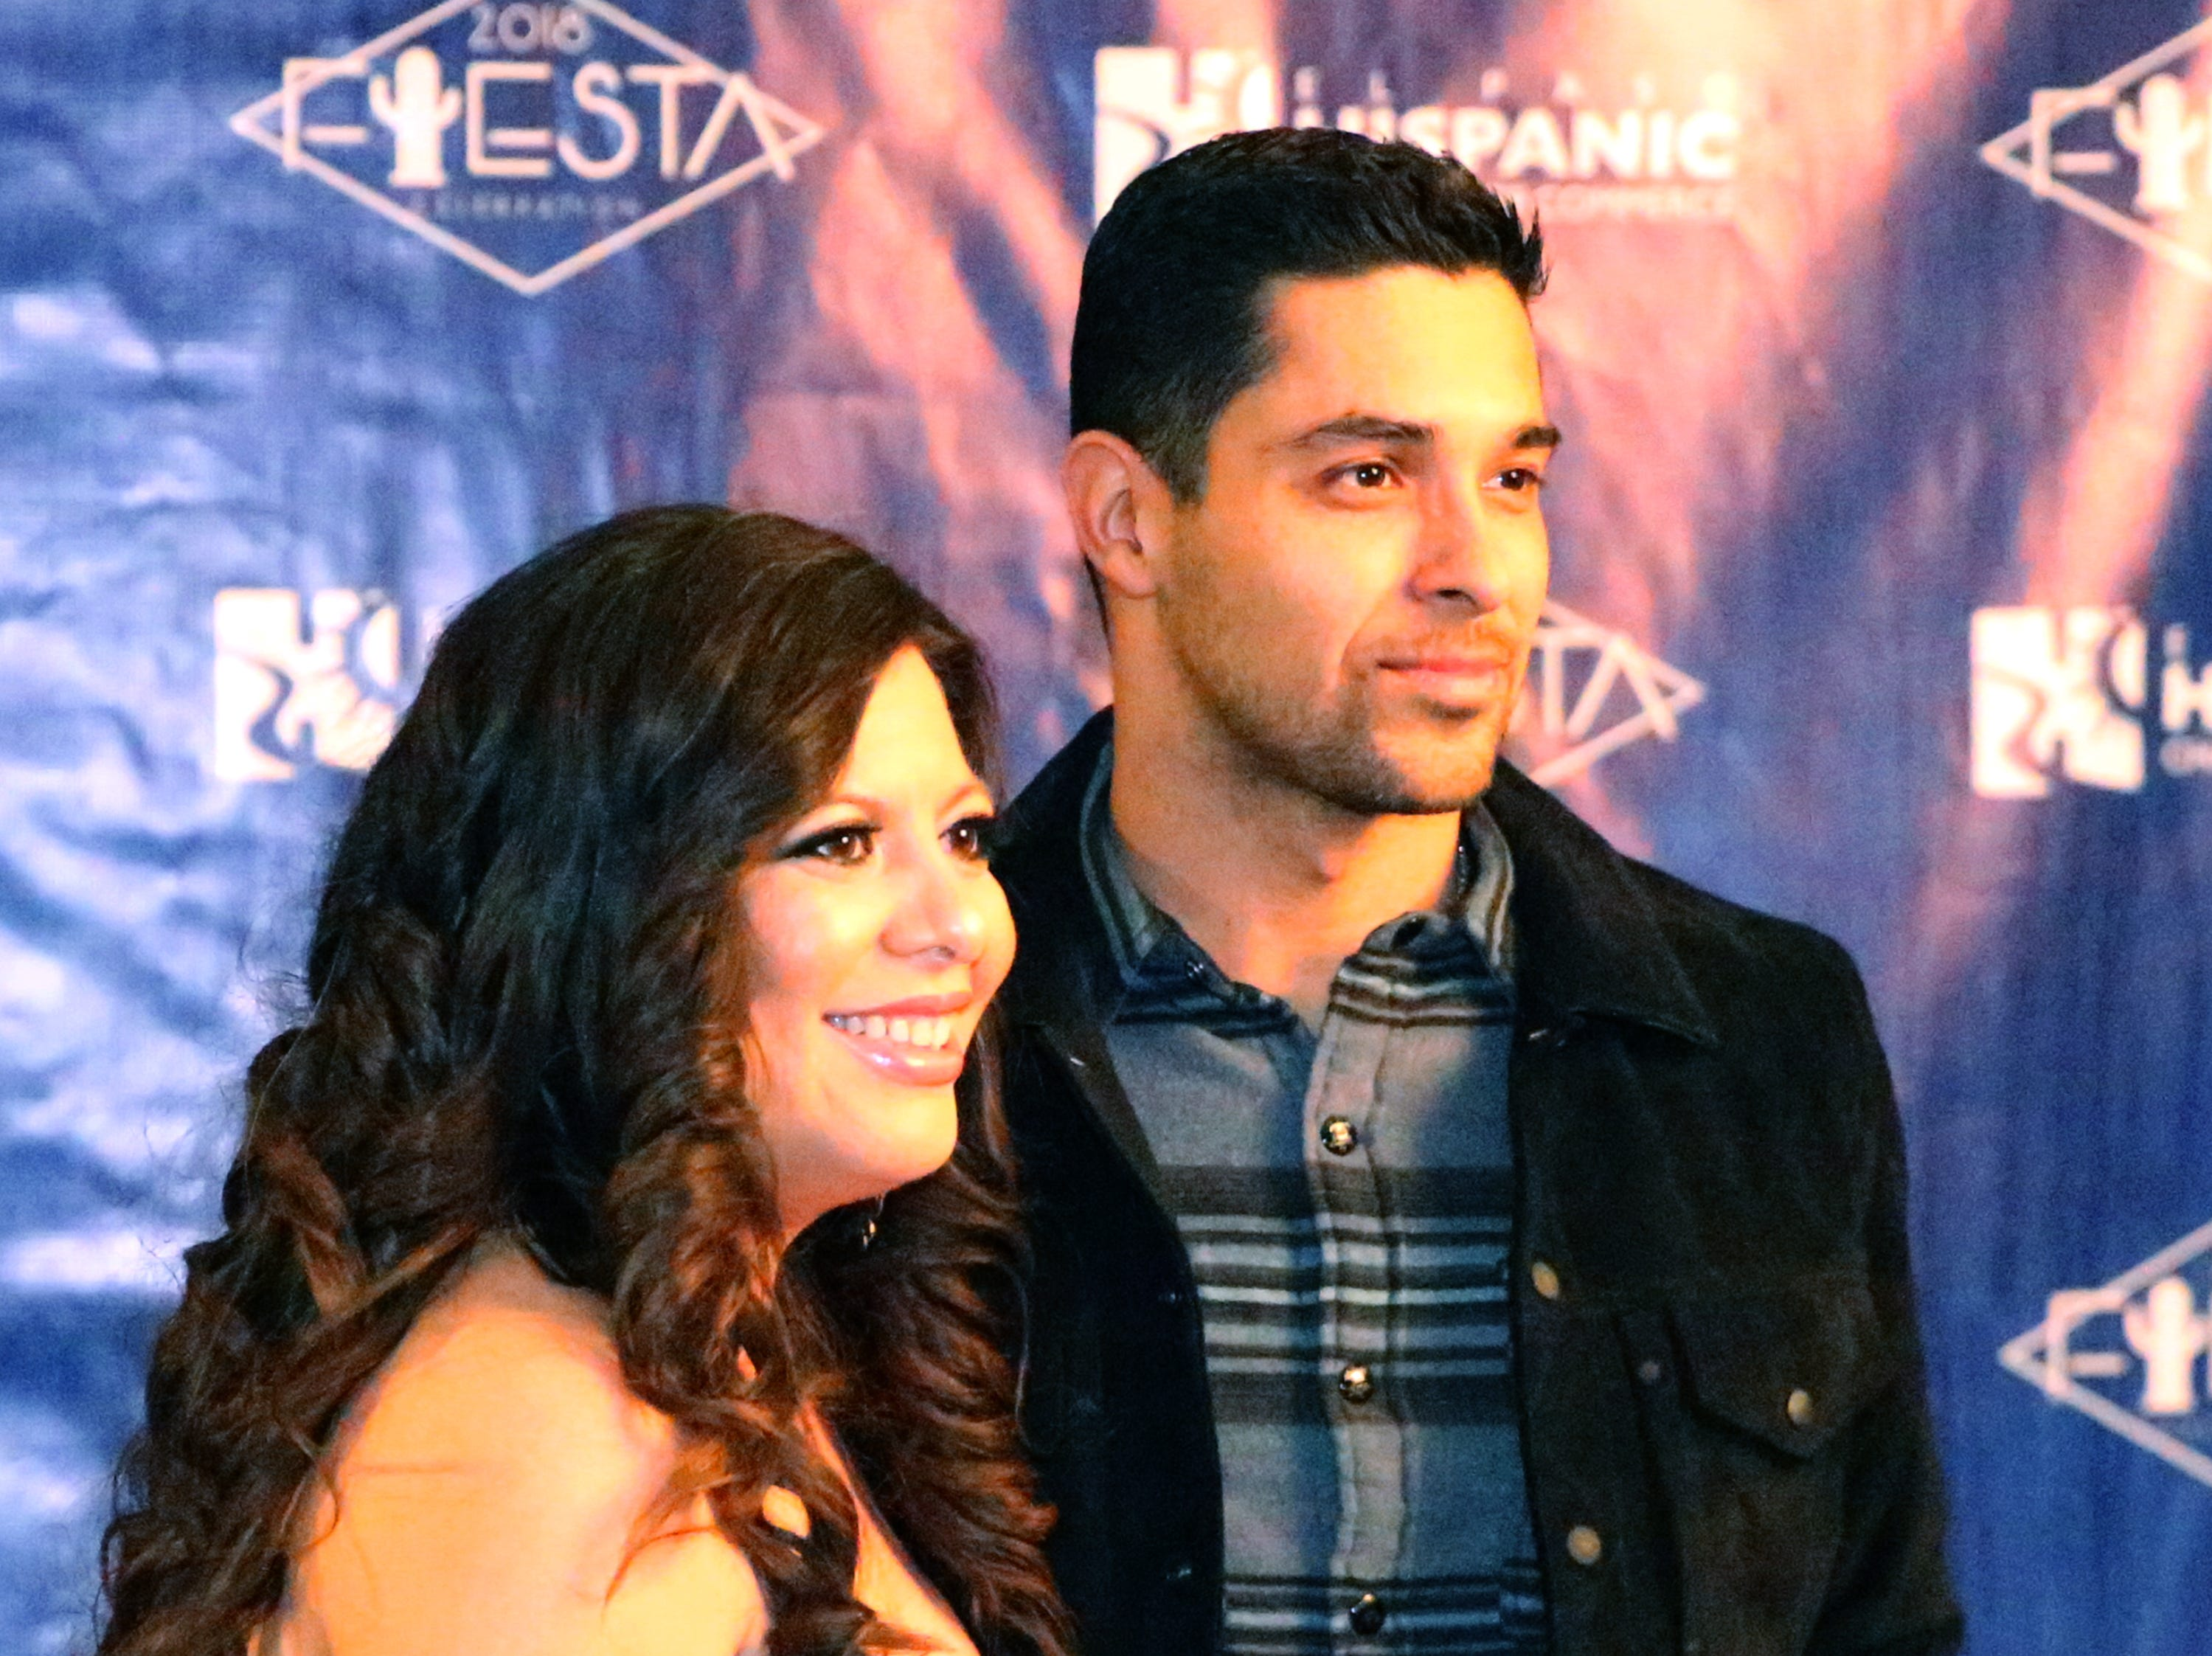 State Rep. Mary Gonzalez poses for a photo with actor/producer Wilmer Valderrama during a reception during the El Paso Hispanic Chamber of Commerce' 28th annual Fiesta Celebration Saturday. Valderrama was the featured guest at the event.